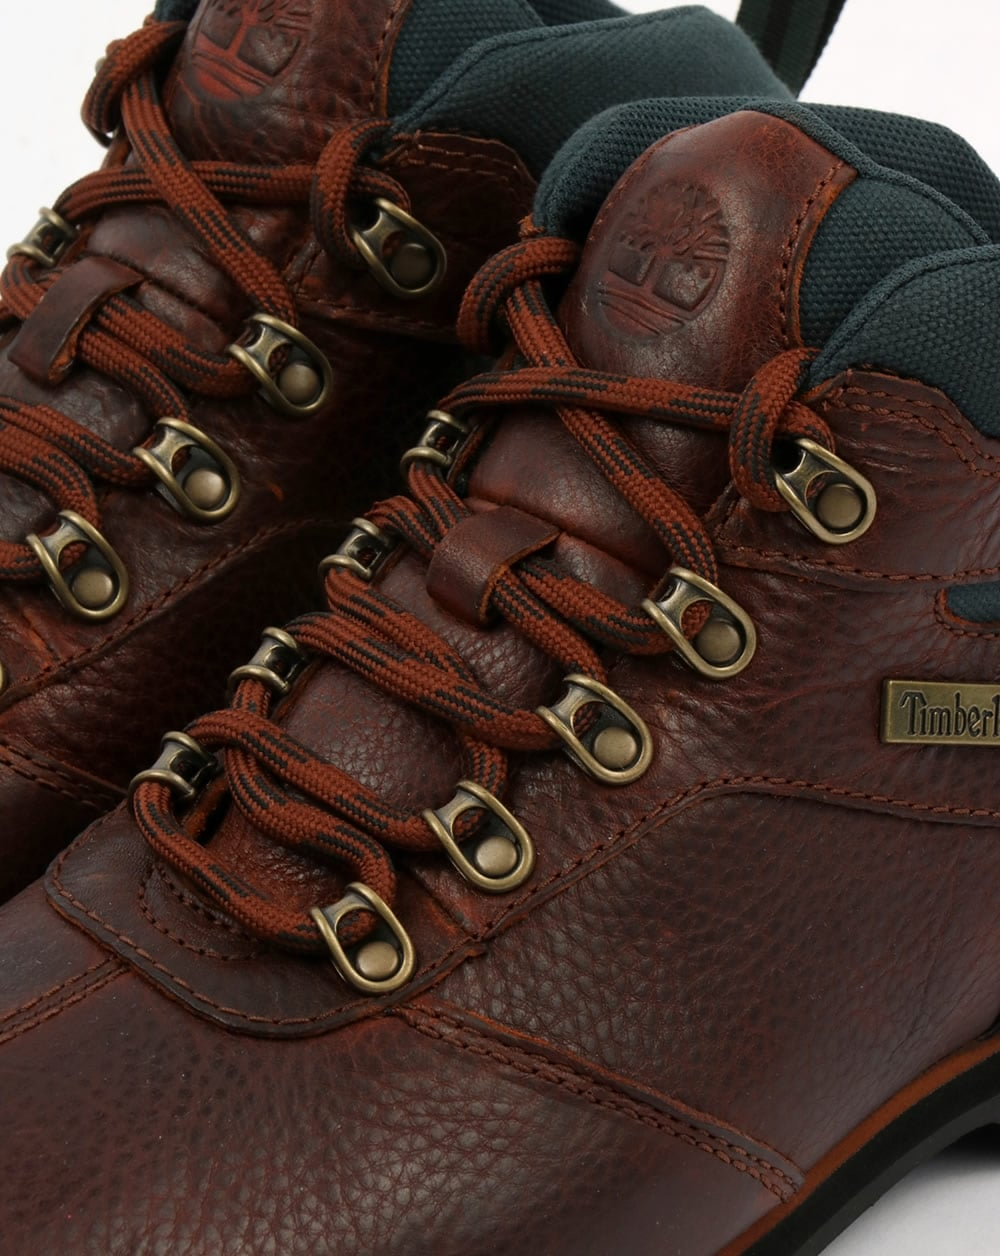 2dd51dc3956 Timberland Splitrock II Boots Brown/Green,2,pro,shoes,hiker,mens